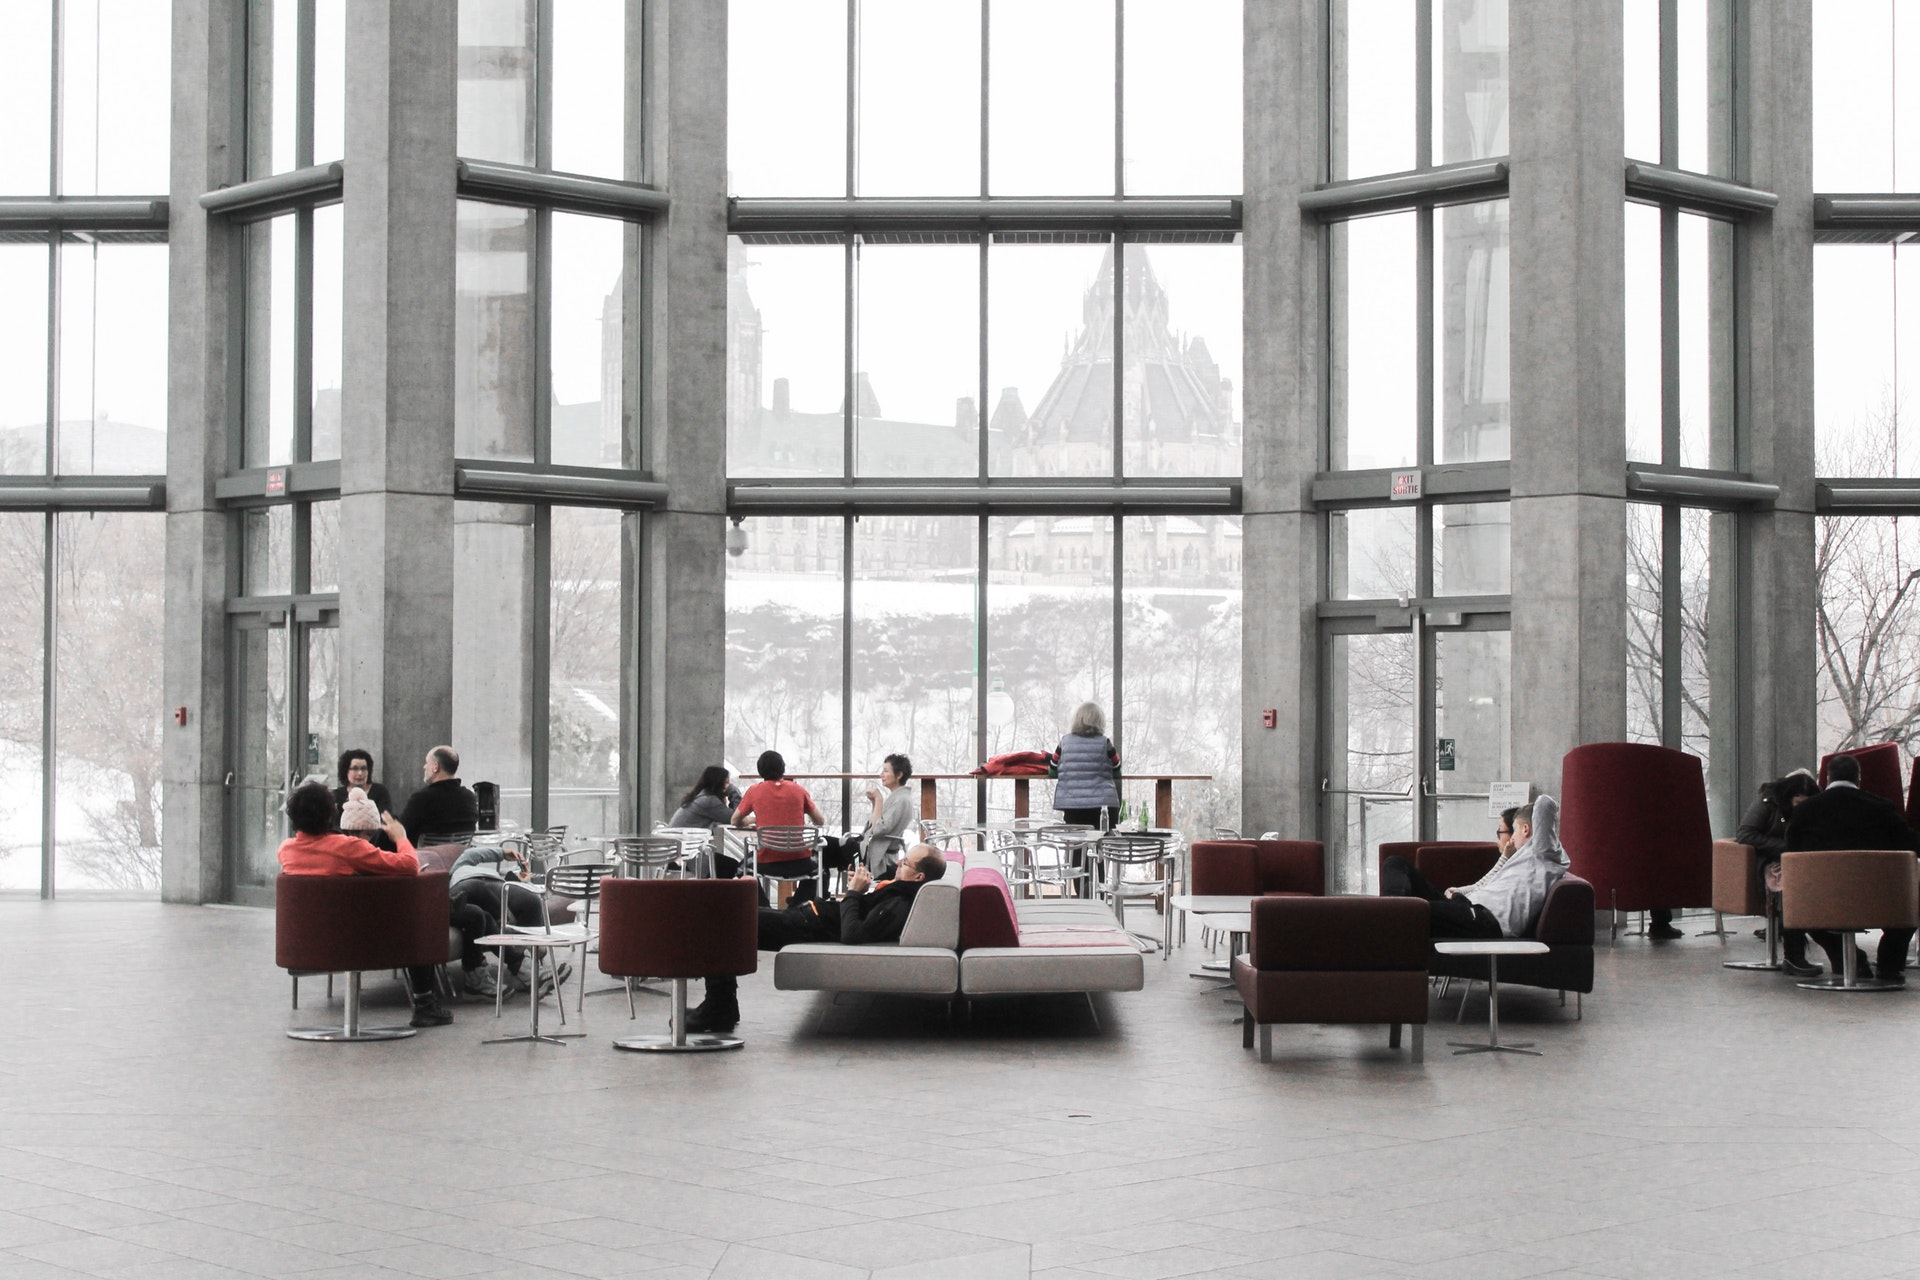 A Swanky Interior Design Can Do Wonders for Your Business